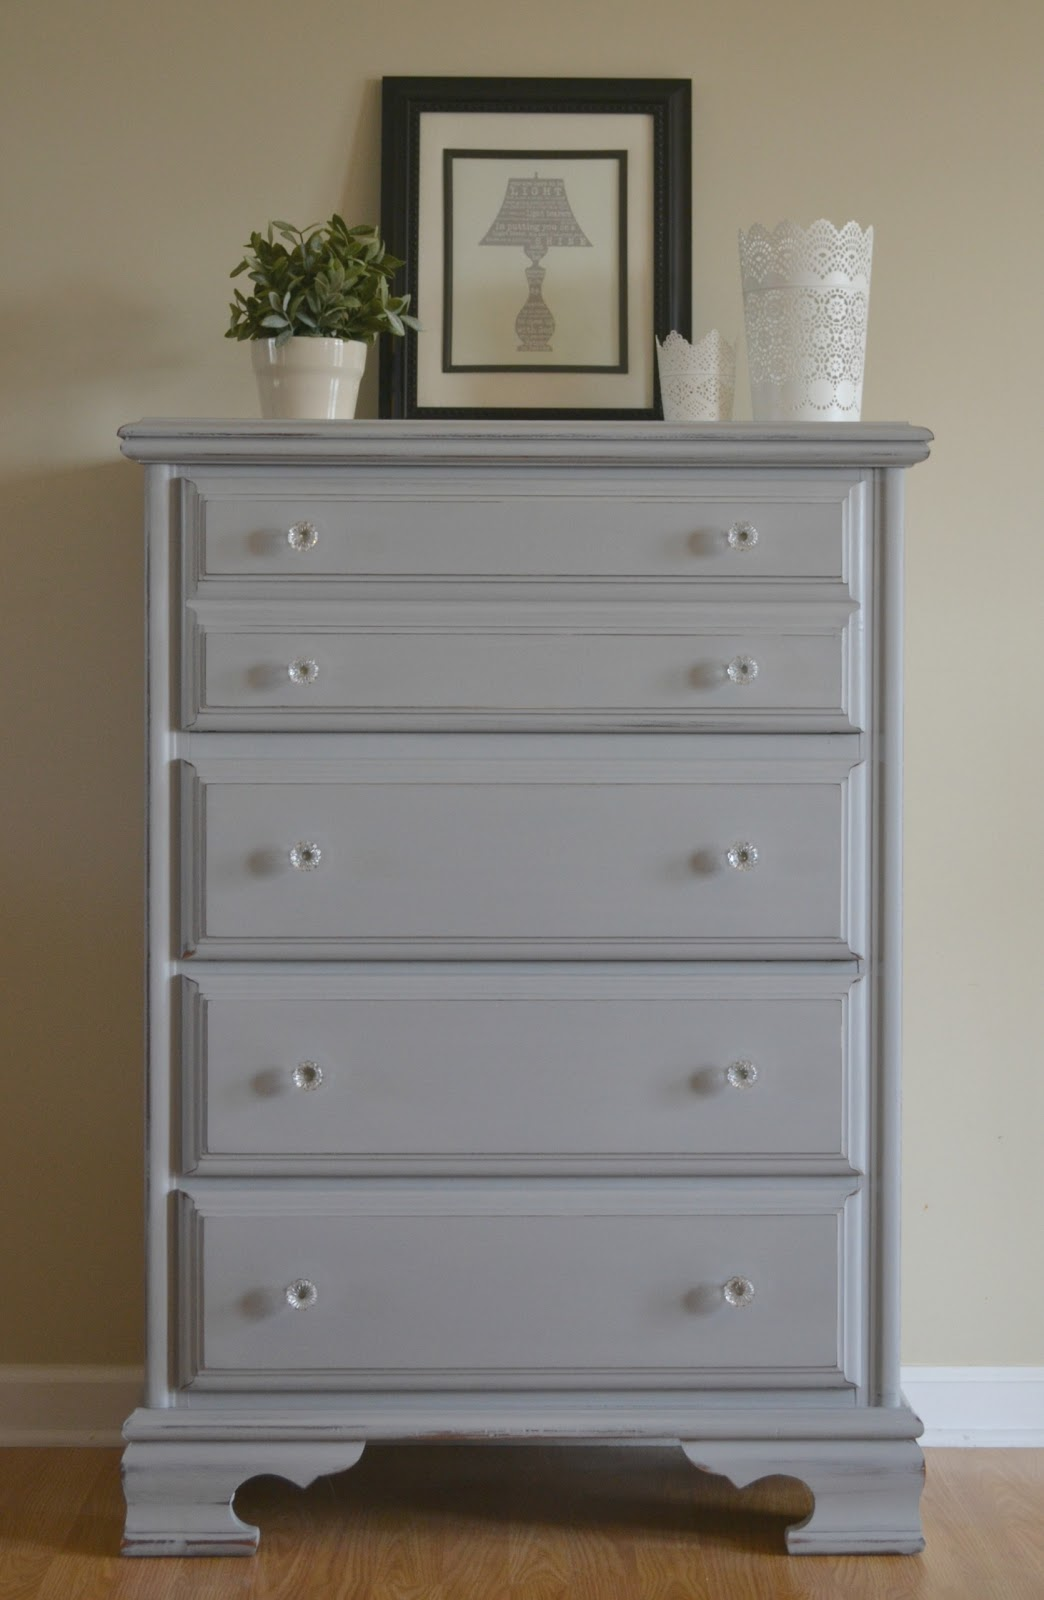 Unique Funky Junk: Paris Gray Chest of Drawers RG51